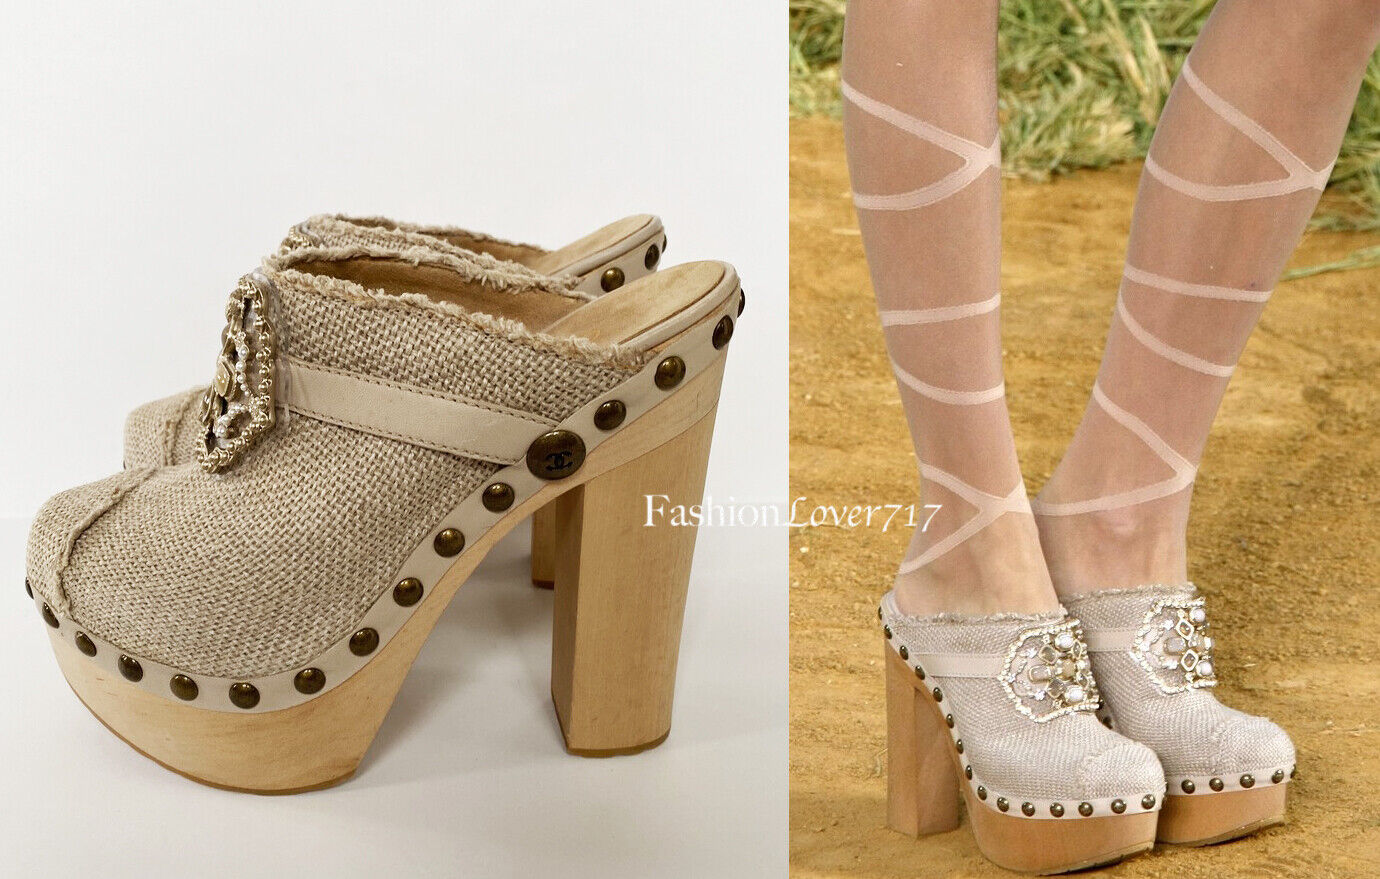 NEW 1350 10P CHANEL BEIGE PLATFORM JEWELED CLOGS HIGH HEELS SHOES 375